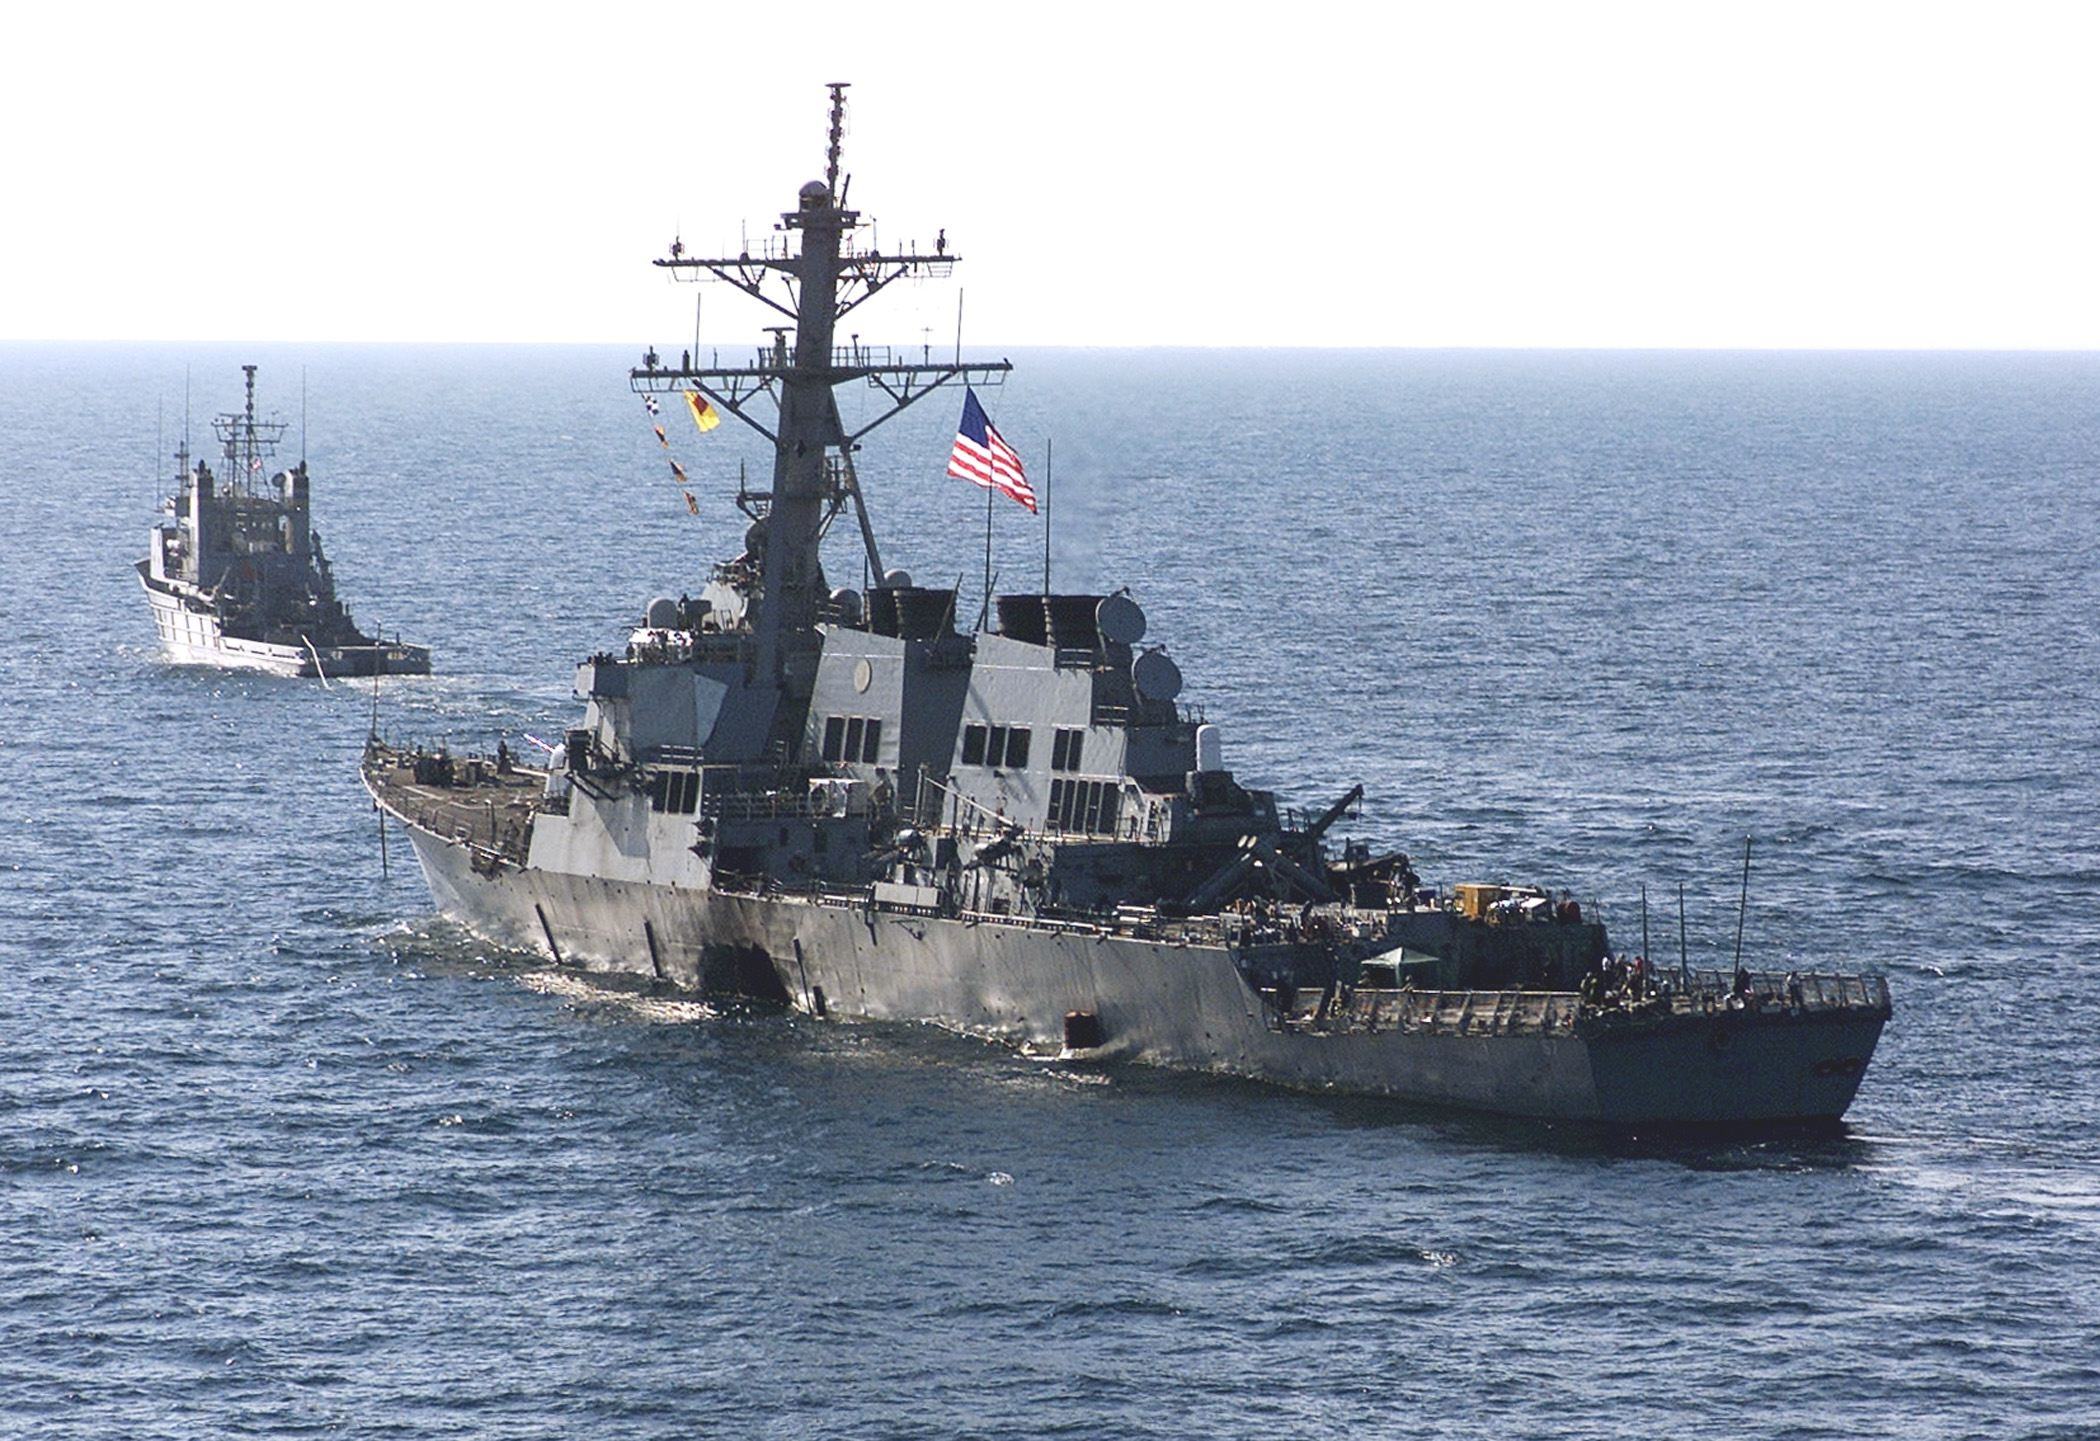 Lawyers for USS Cole bombing suspect ask govt to drop death penalty case